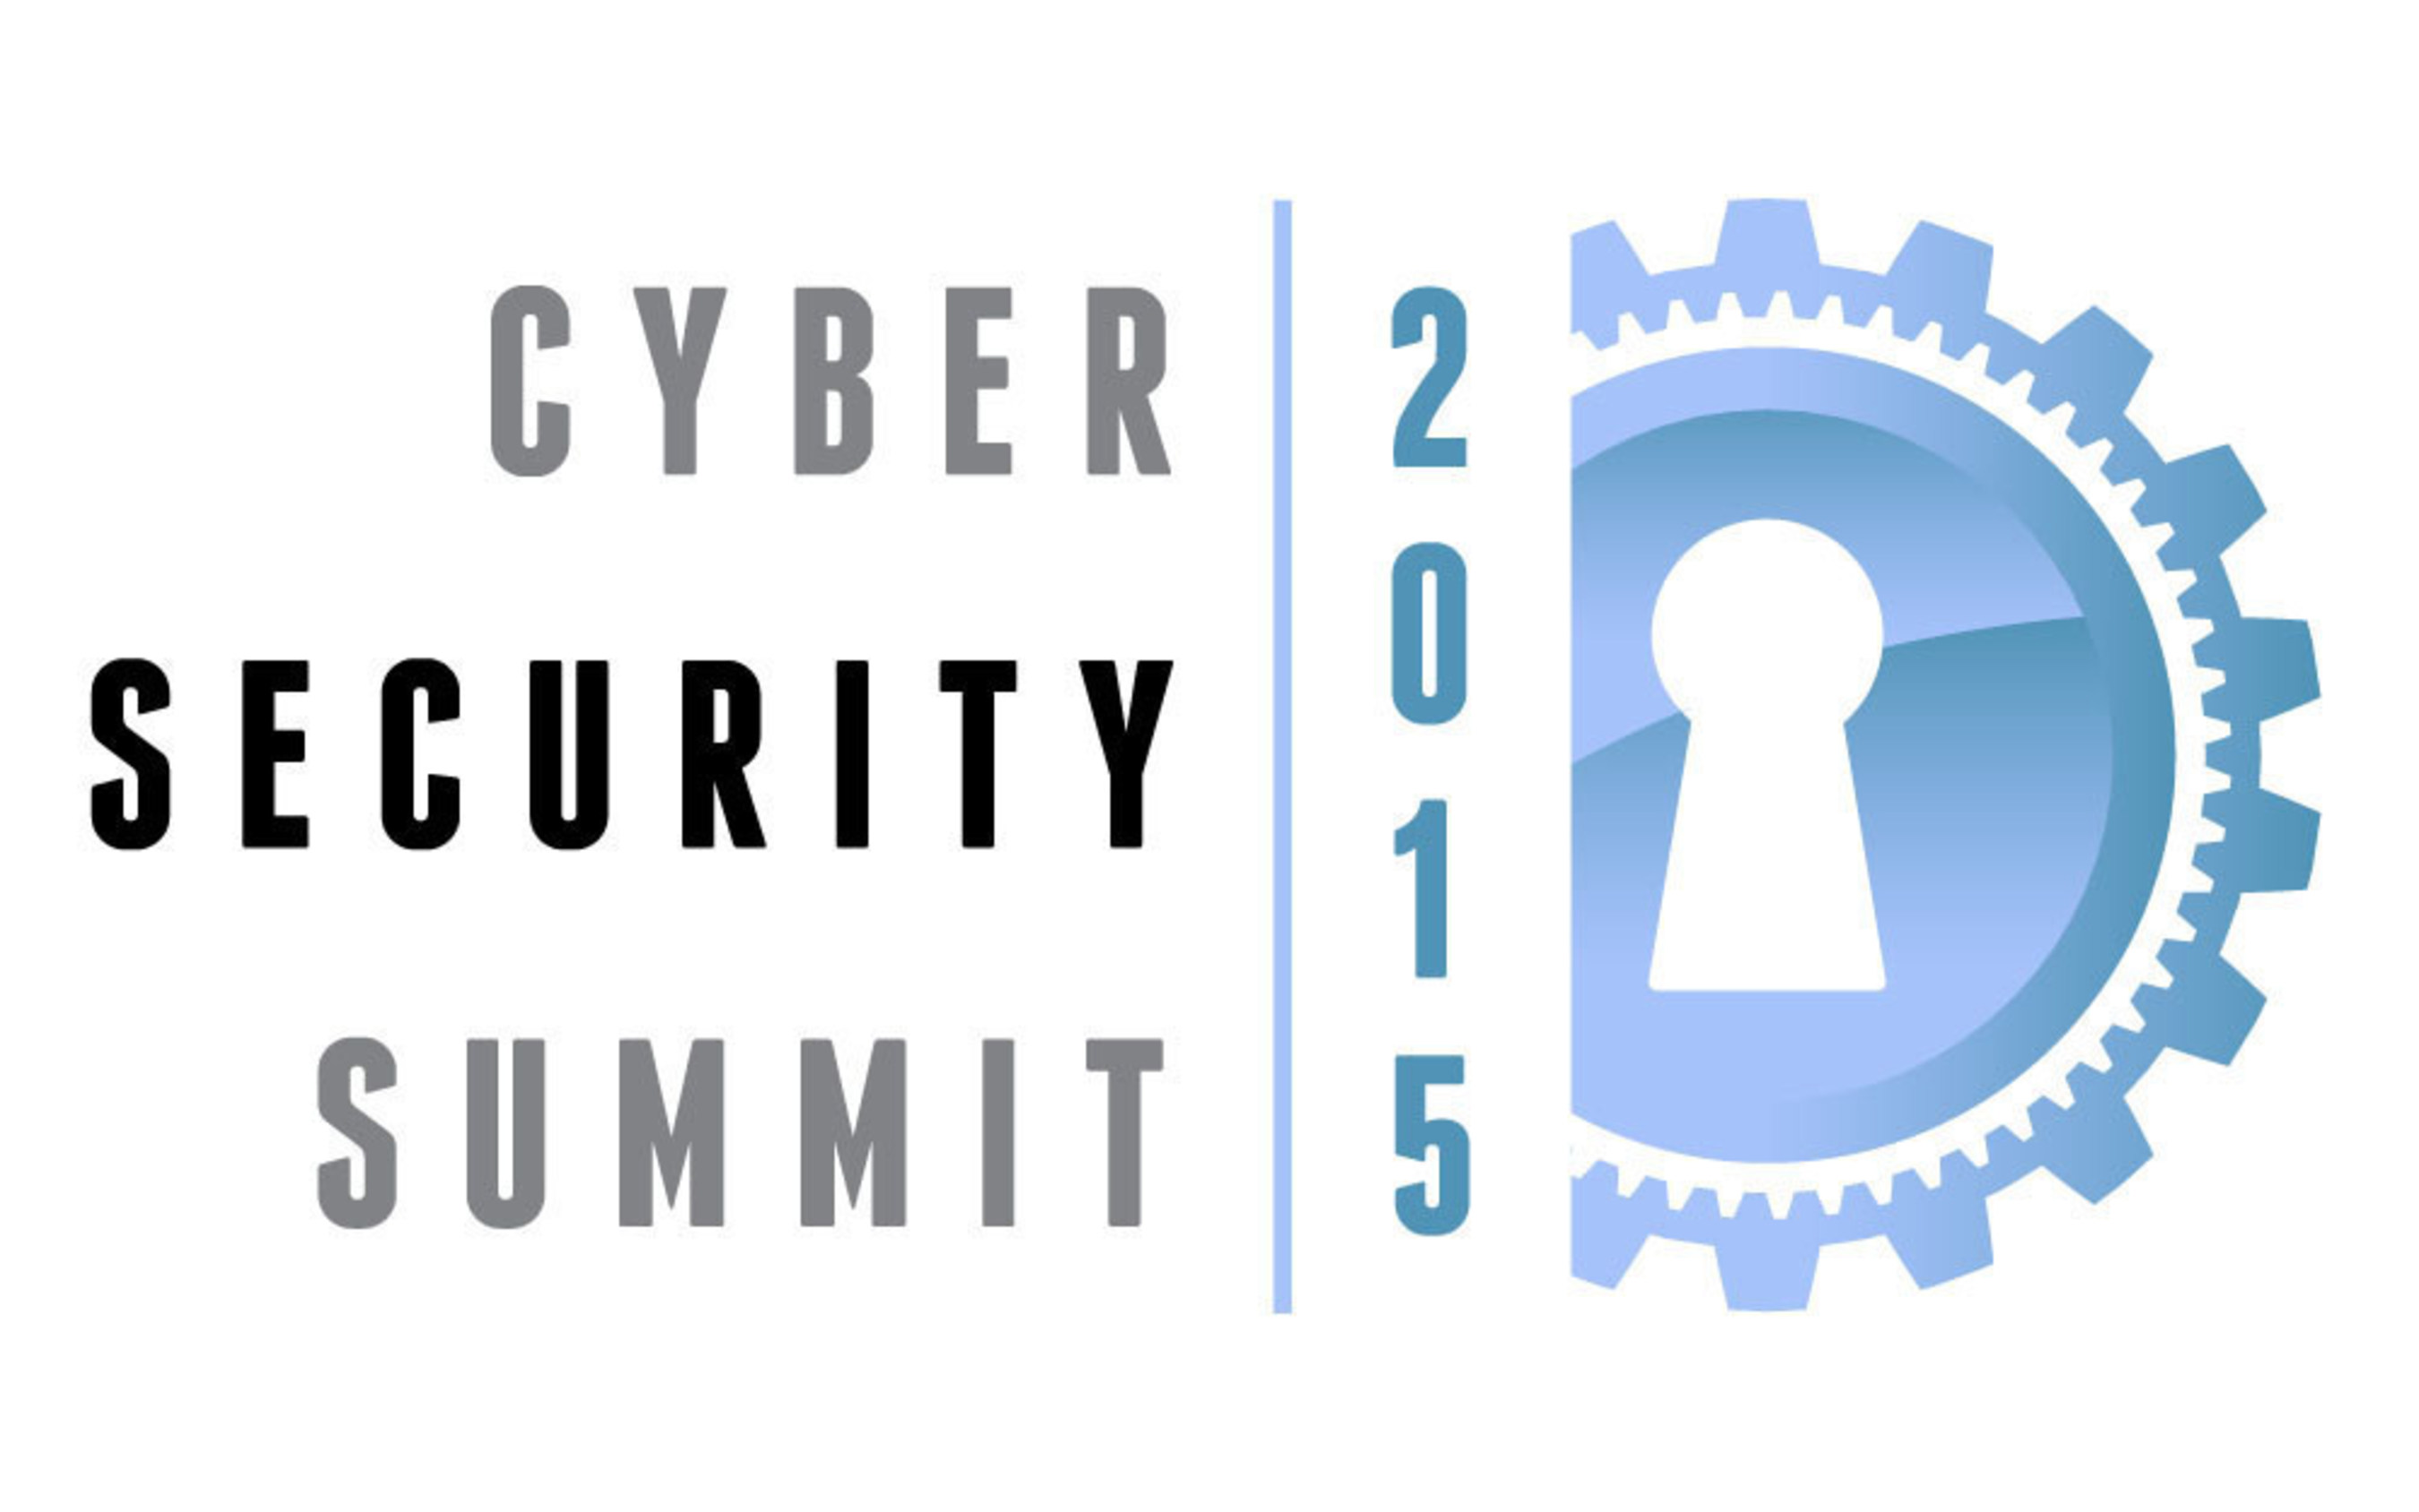 FBI & NSA Cyber Experts to Speak Alongside Numerous Thought Leaders from Prestigious Technology Companies at the Cyber Security Summit October 21st in Boston.